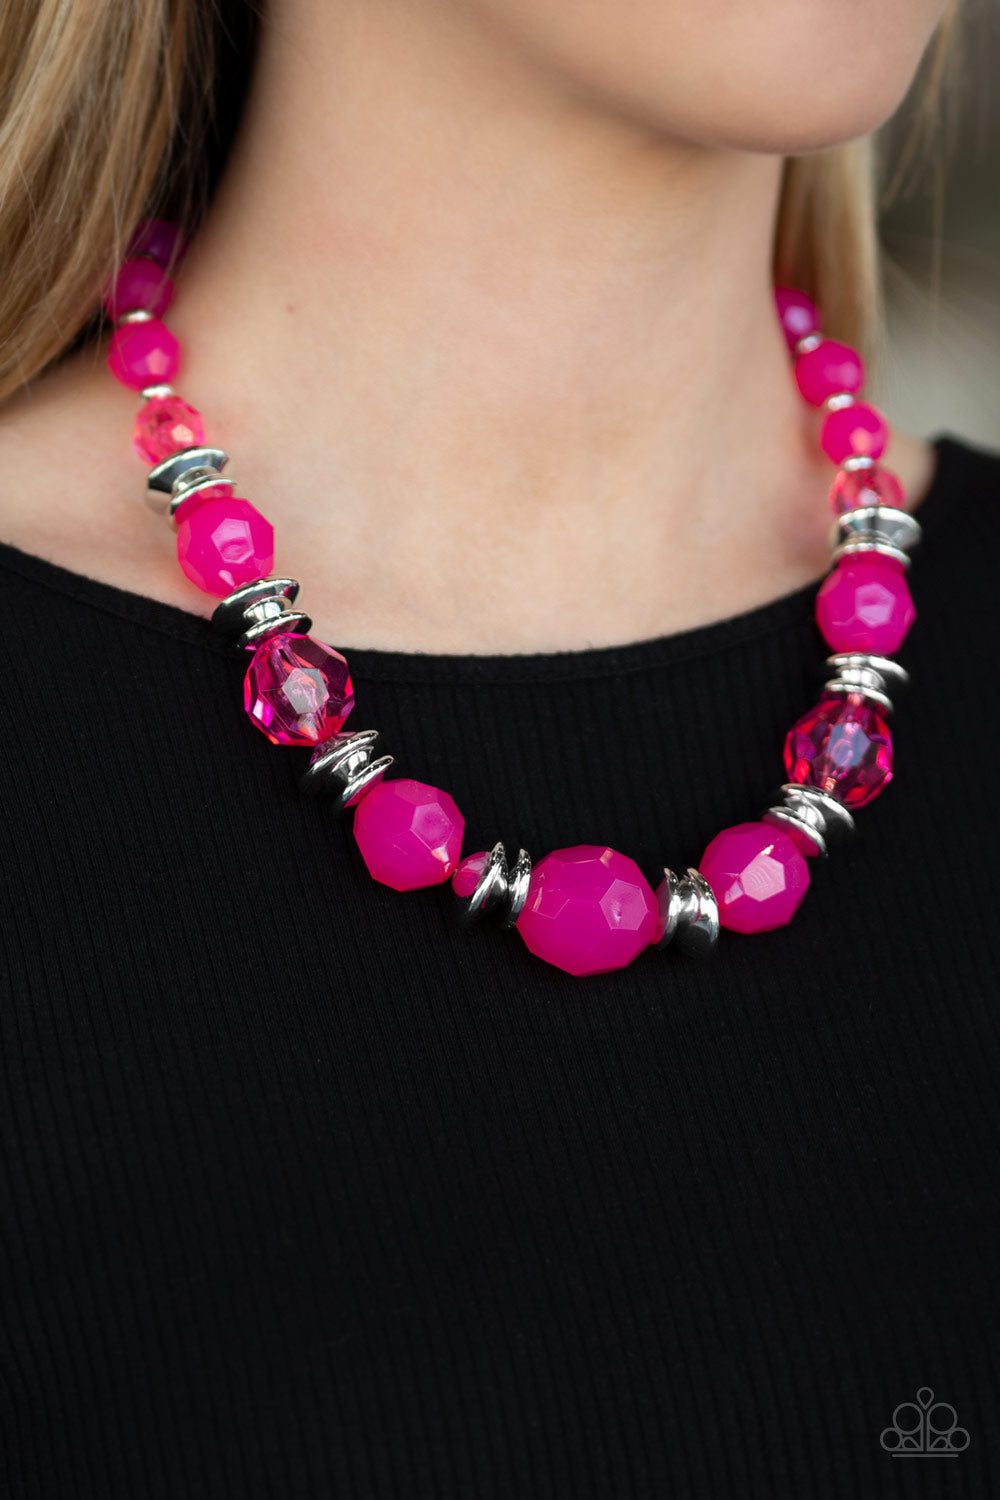 Paparazzi Jewelry & Accessories - Dine And Dash - Pink Necklace. Bling By Titia Boutique